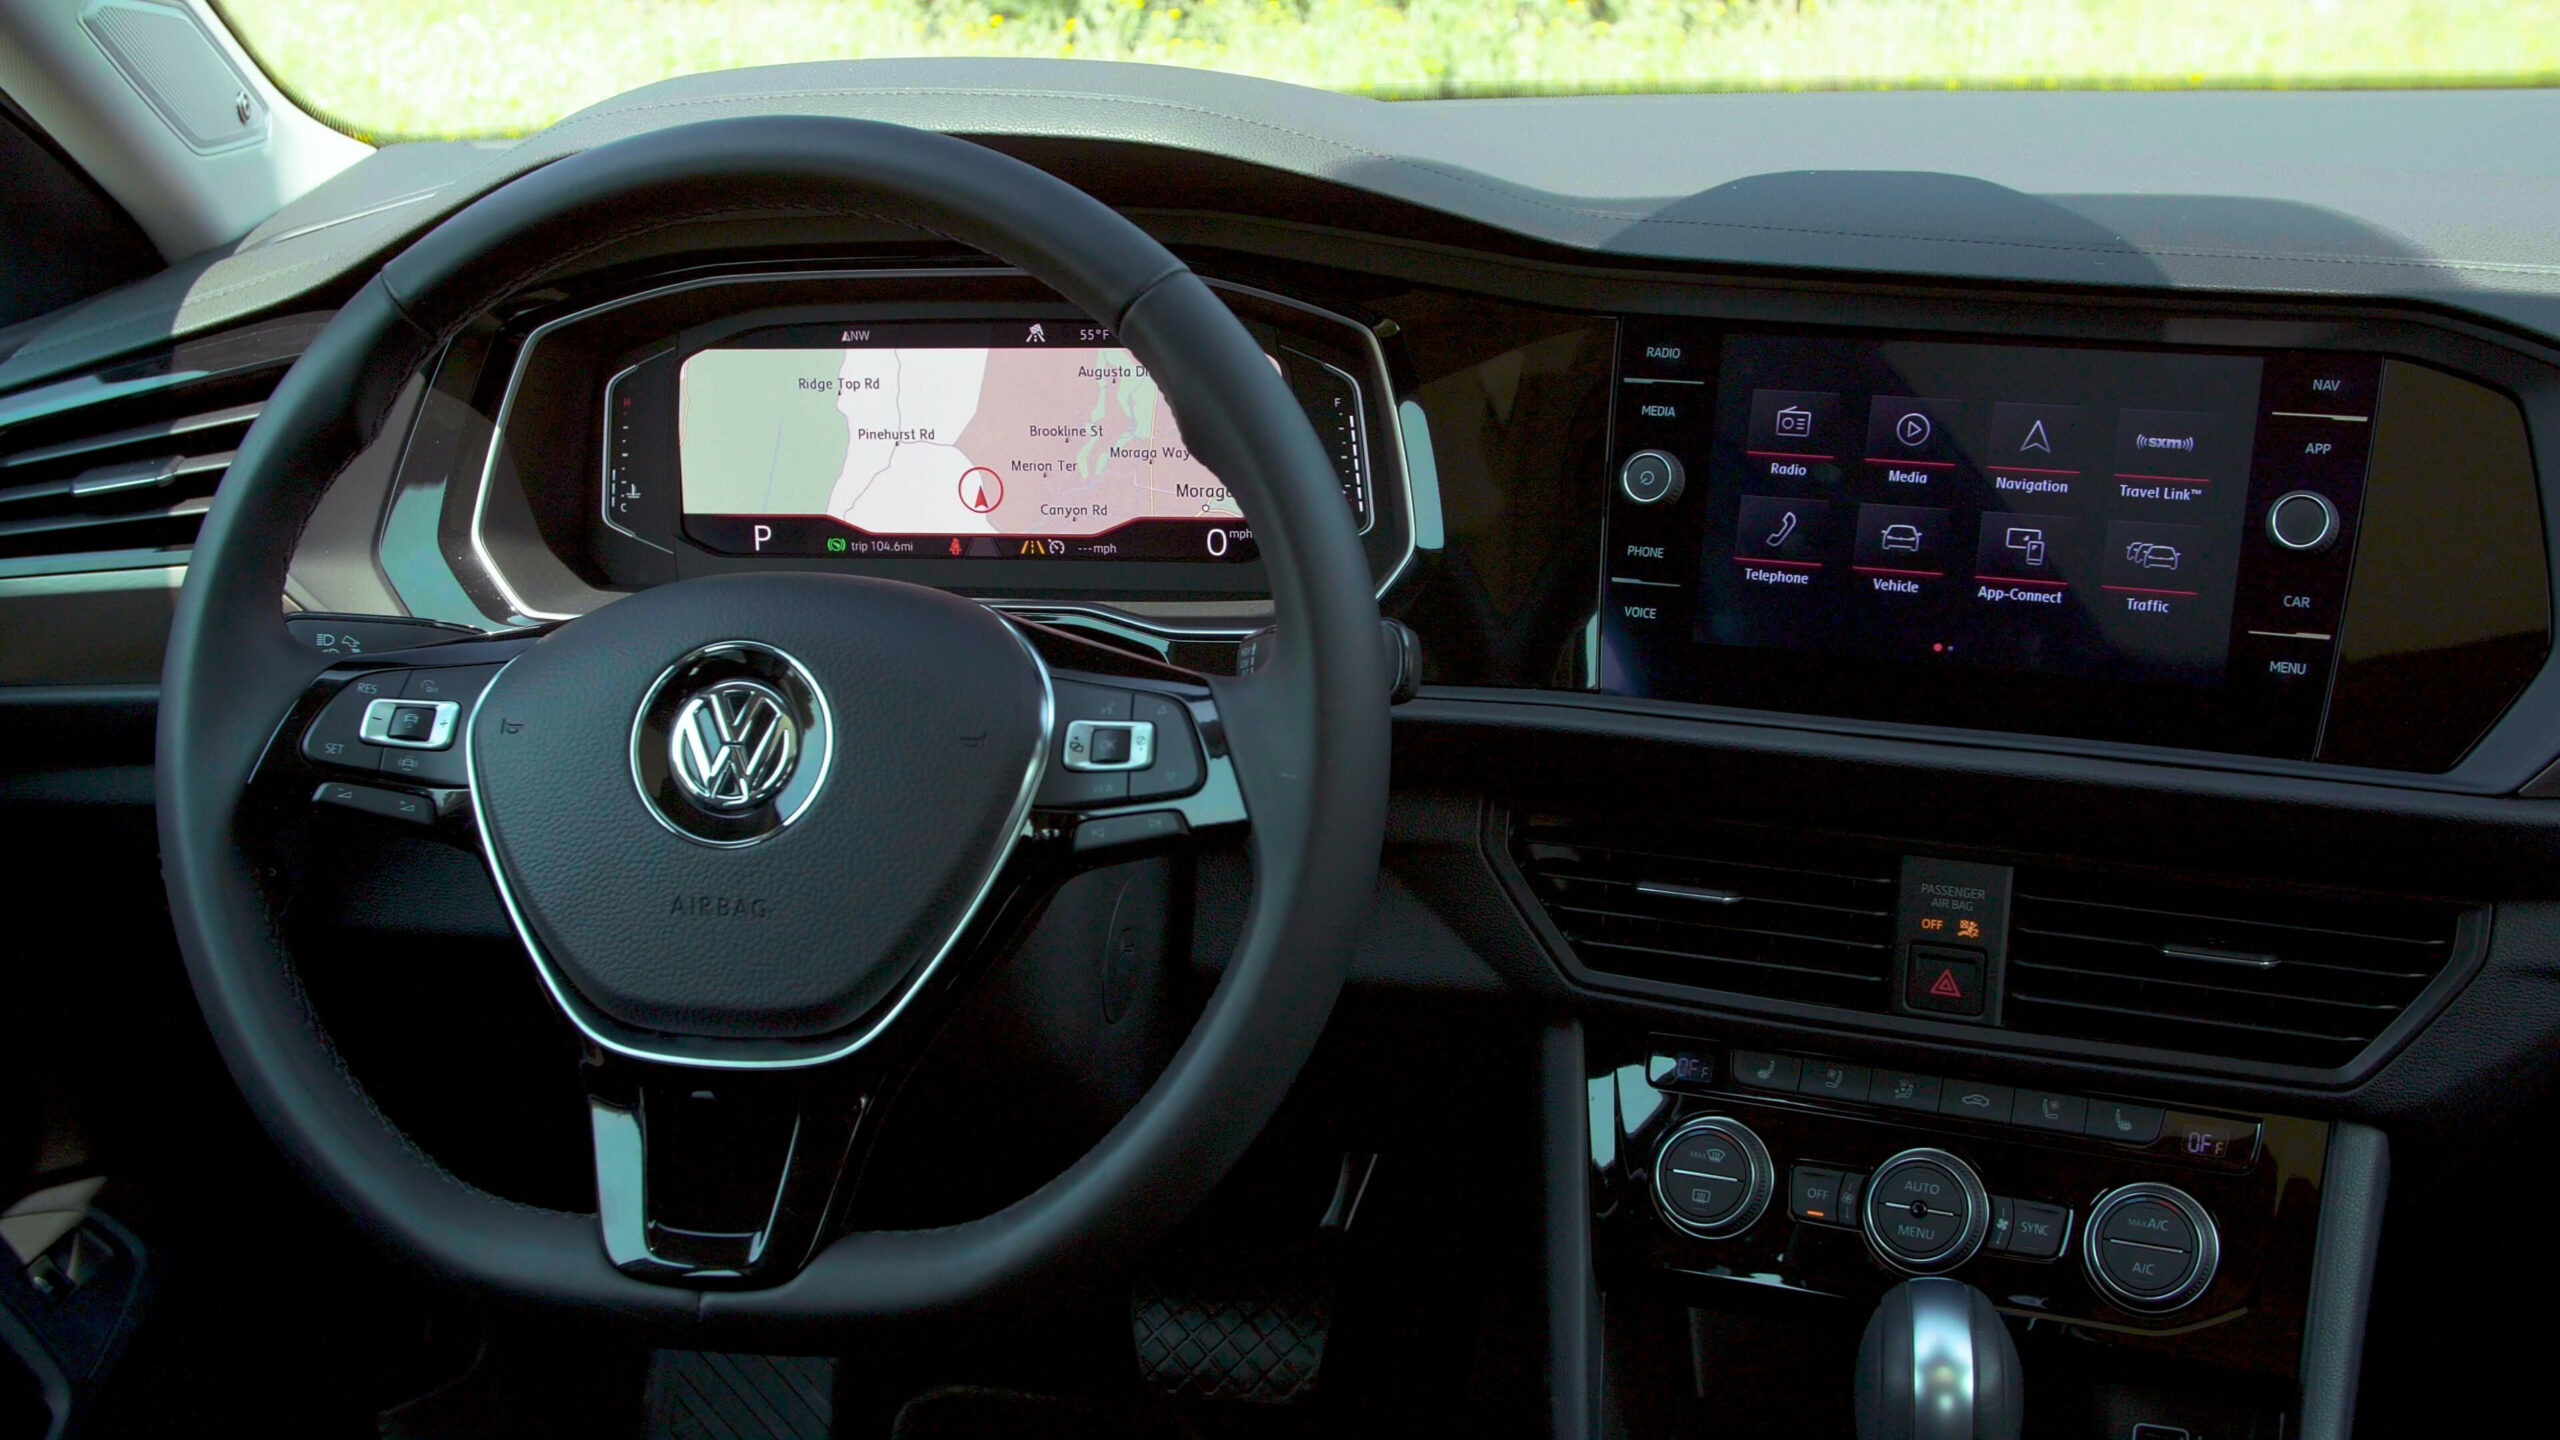 Check out Volkswagen's Digital Cockpit tech in the 7 Jetta